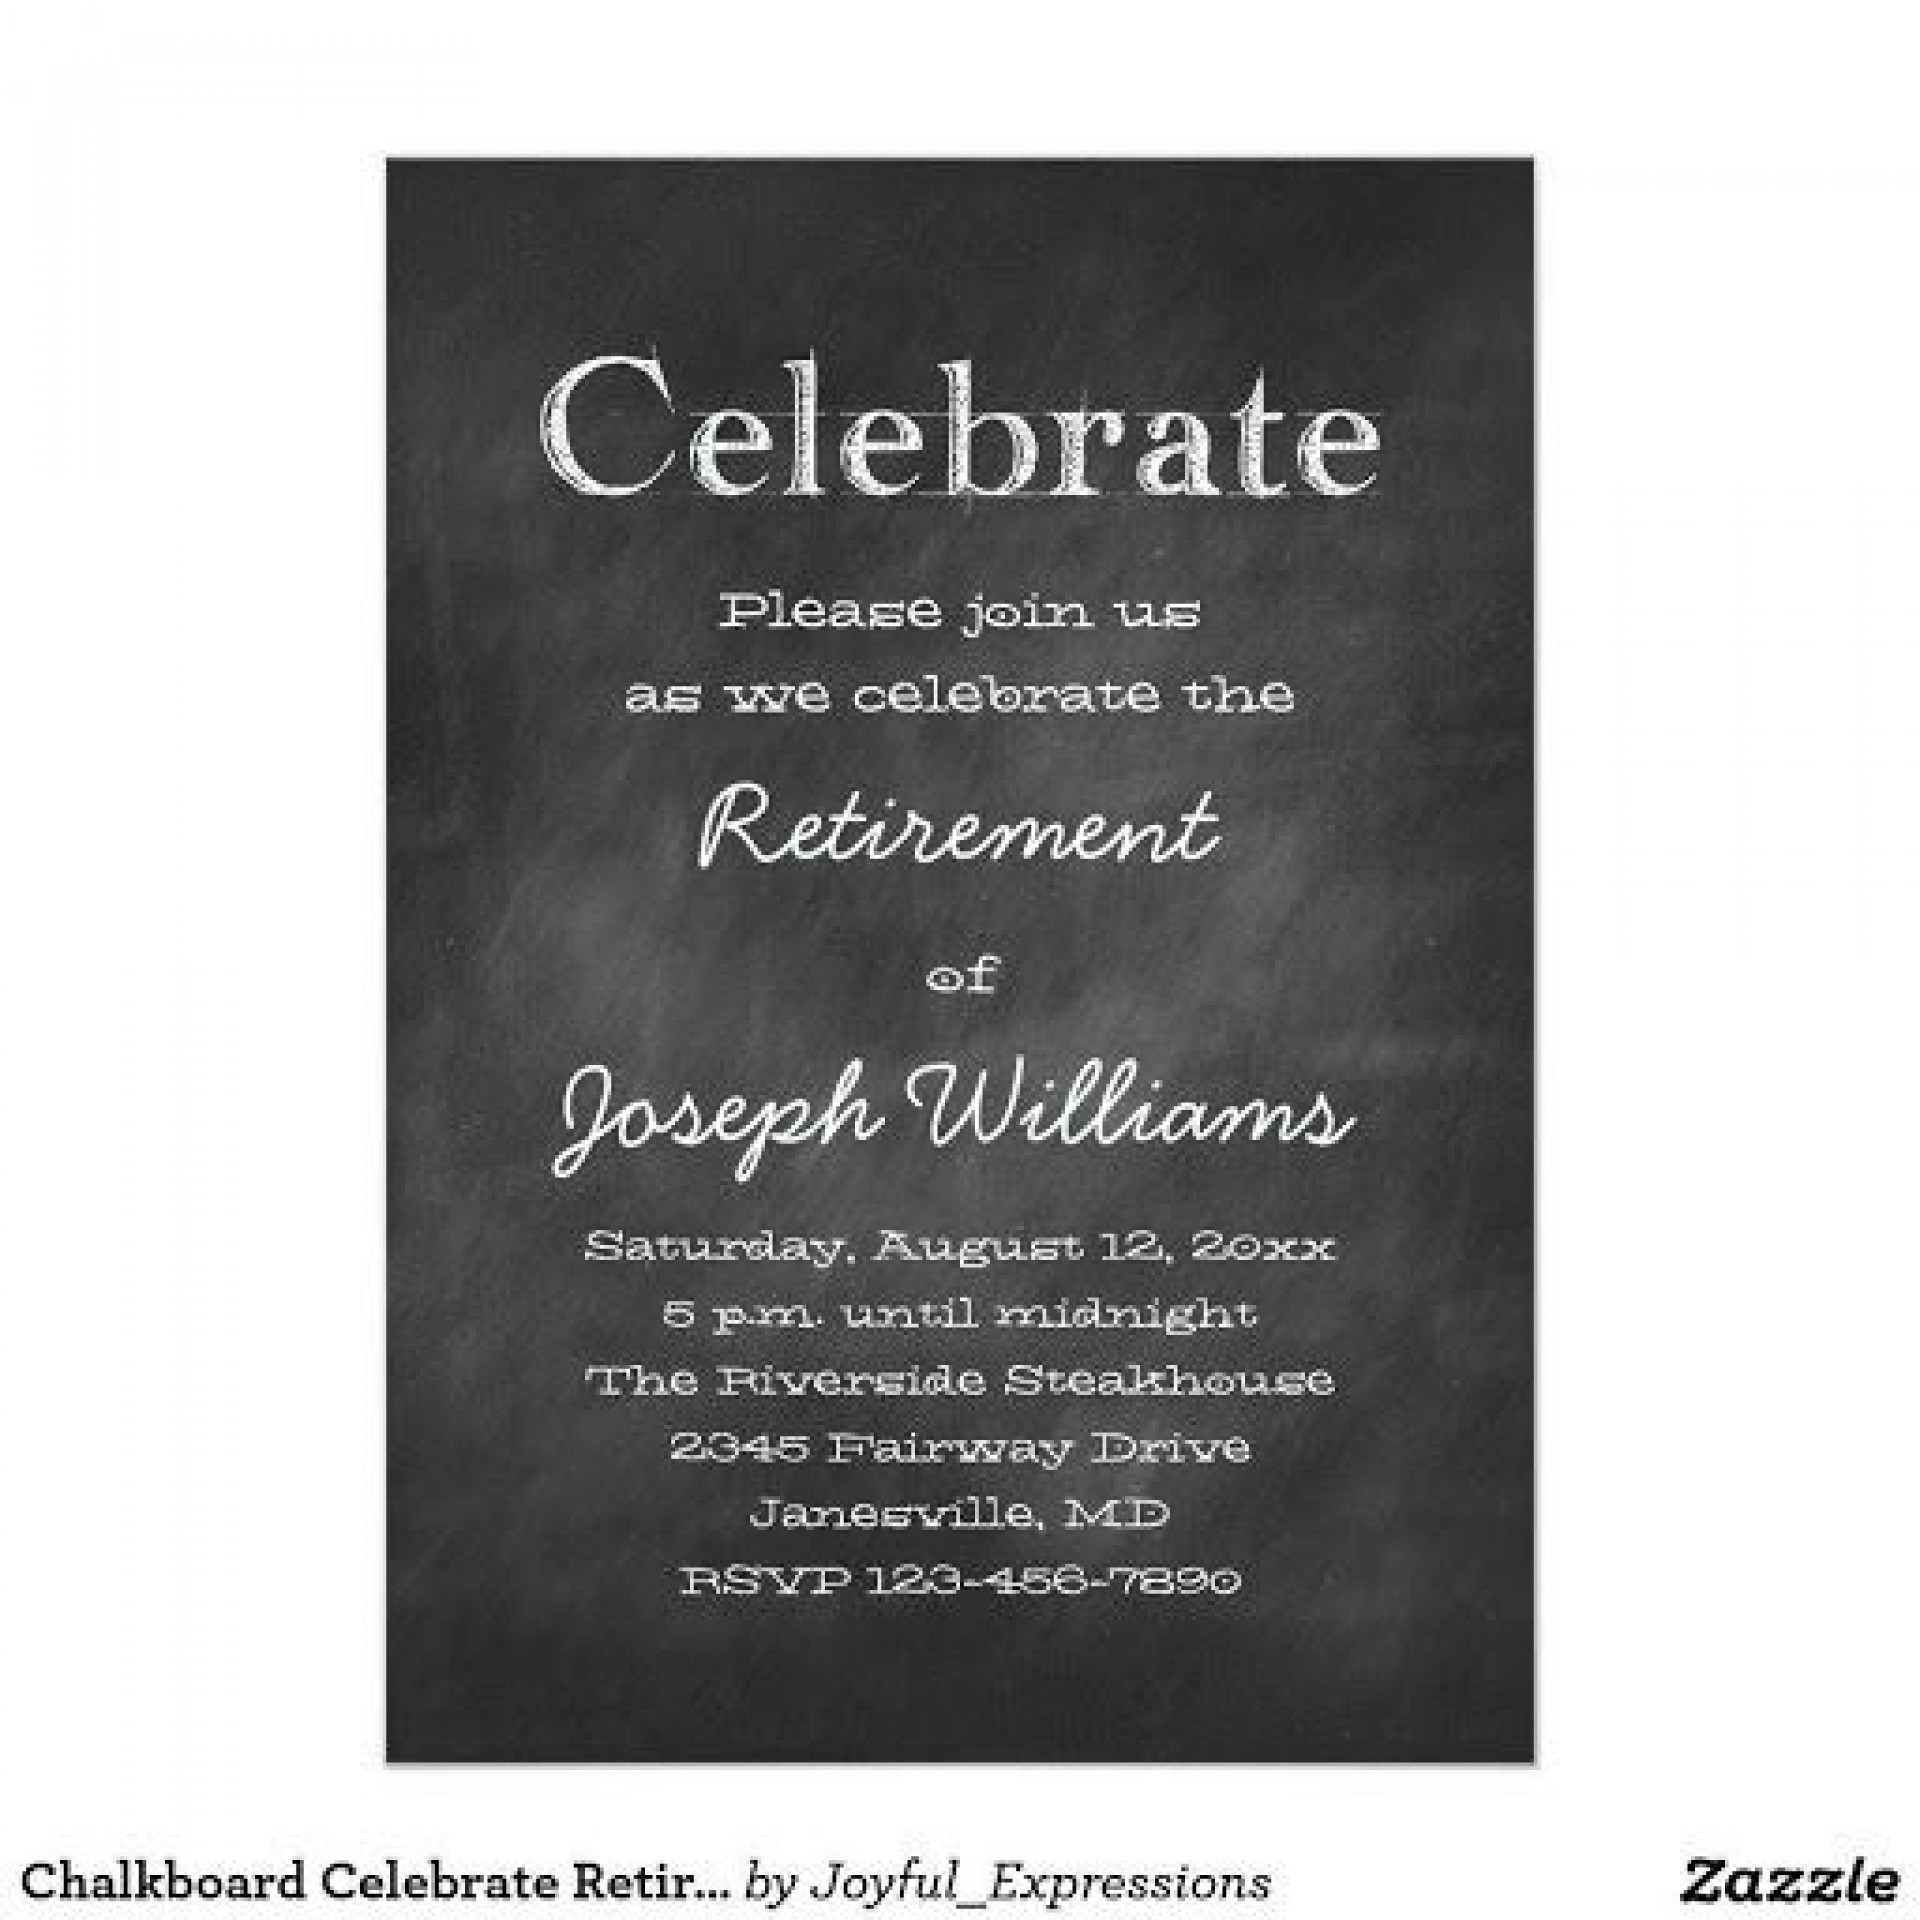 008 Amazing Retirement Invitation Template Free Concept  Party Word Download1920